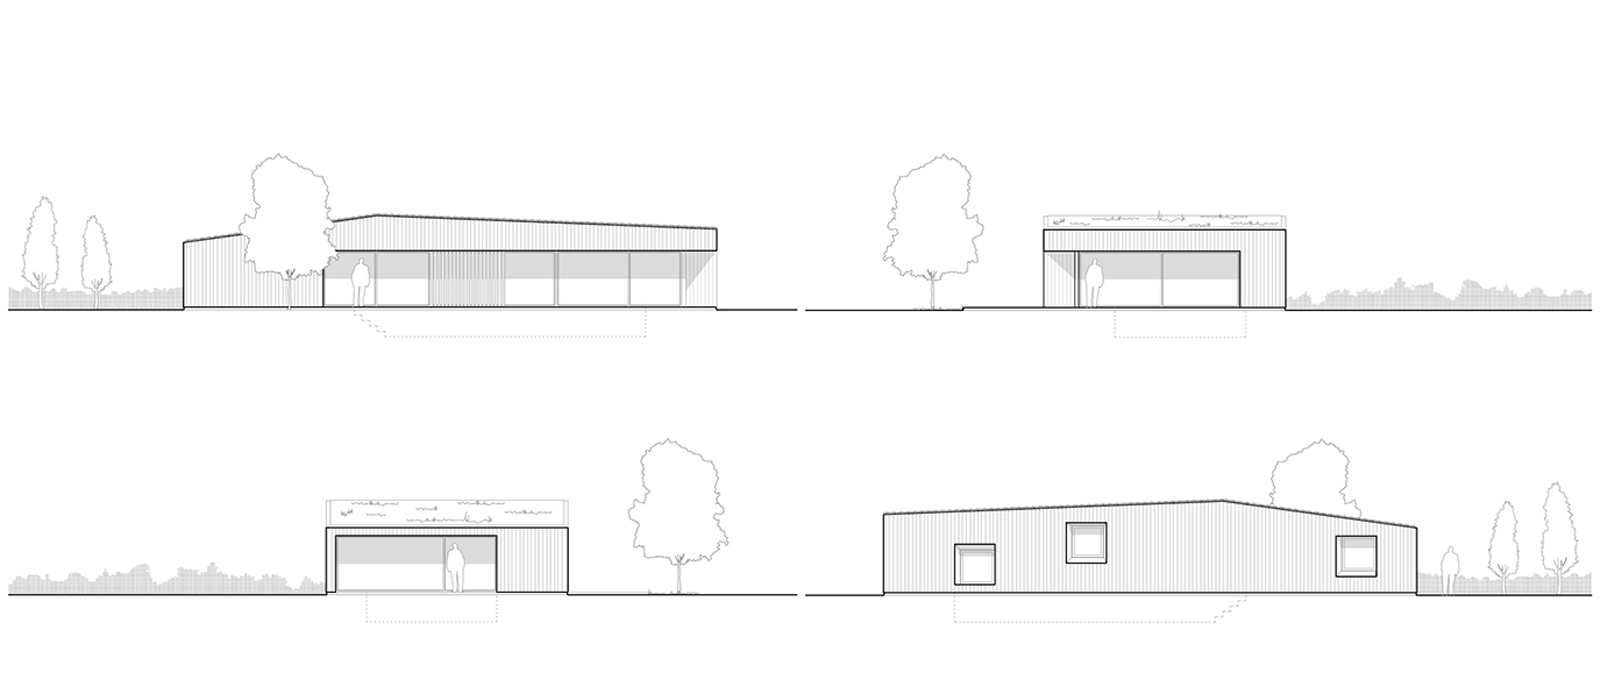 gyd architecture | pool house elevations